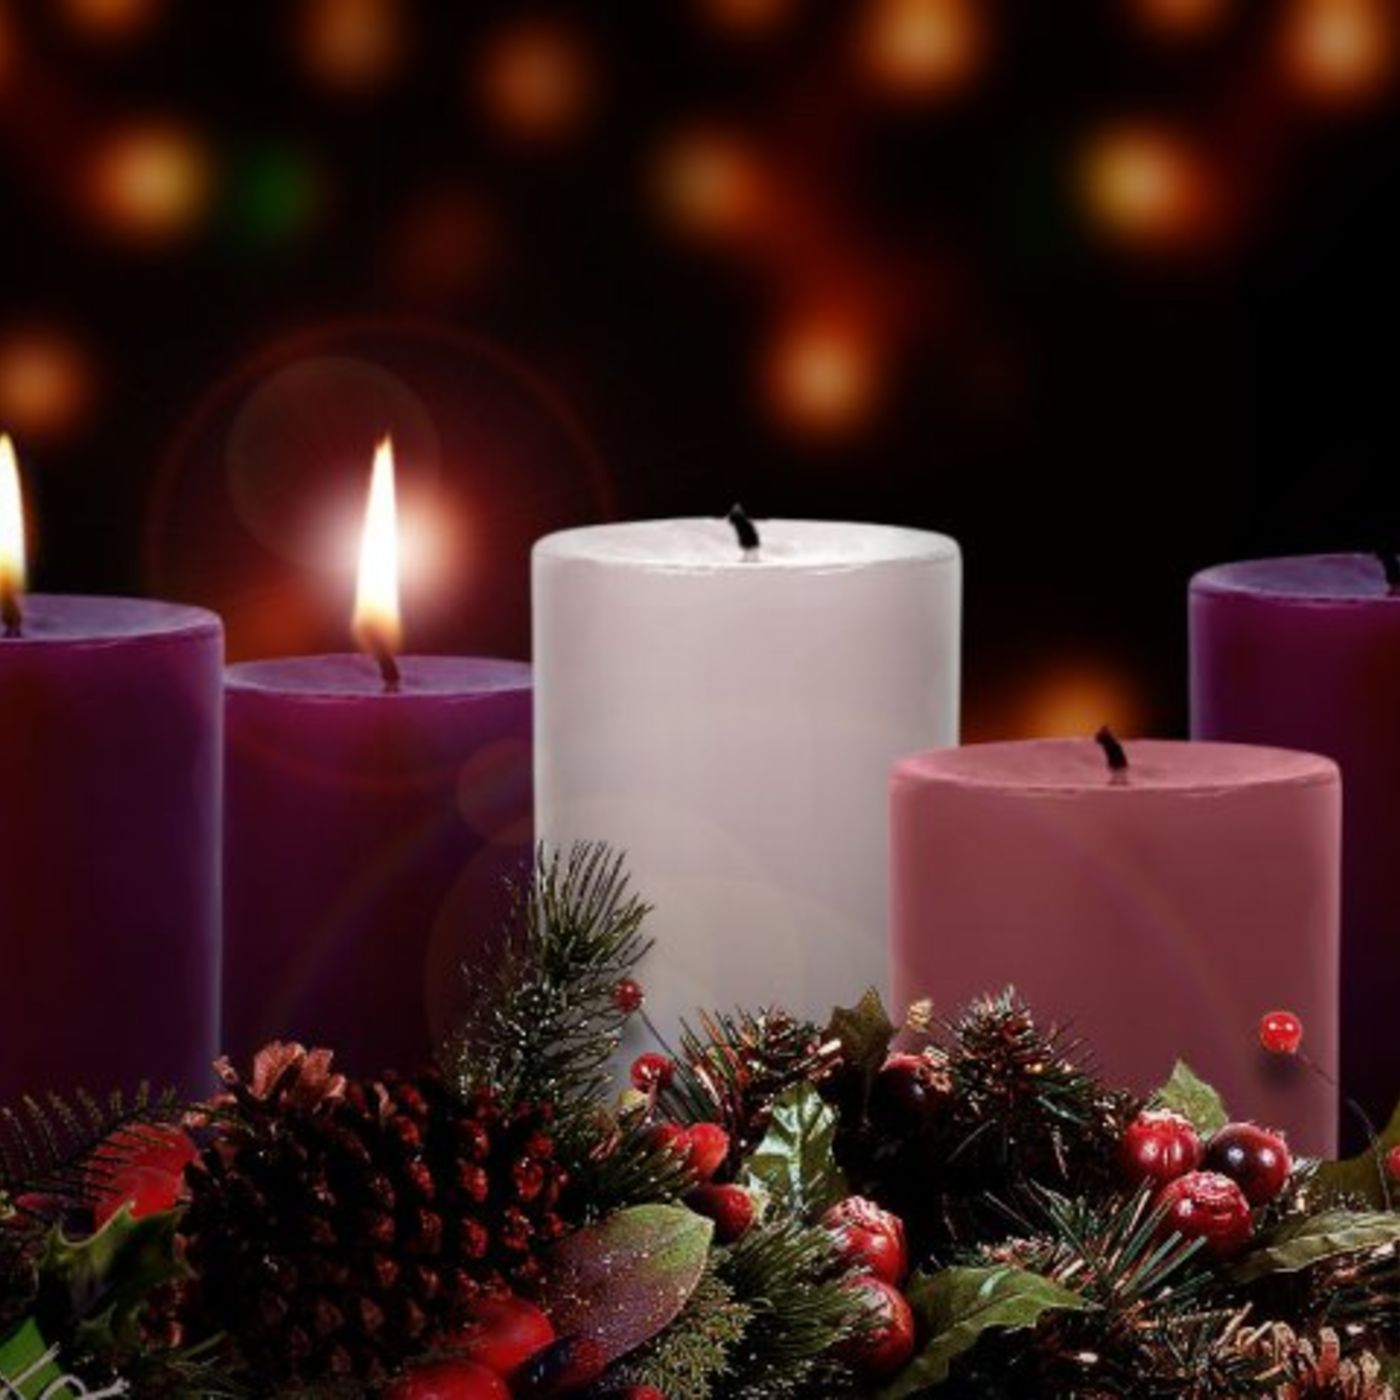 9th December 2018, The Second Sunday of Advent